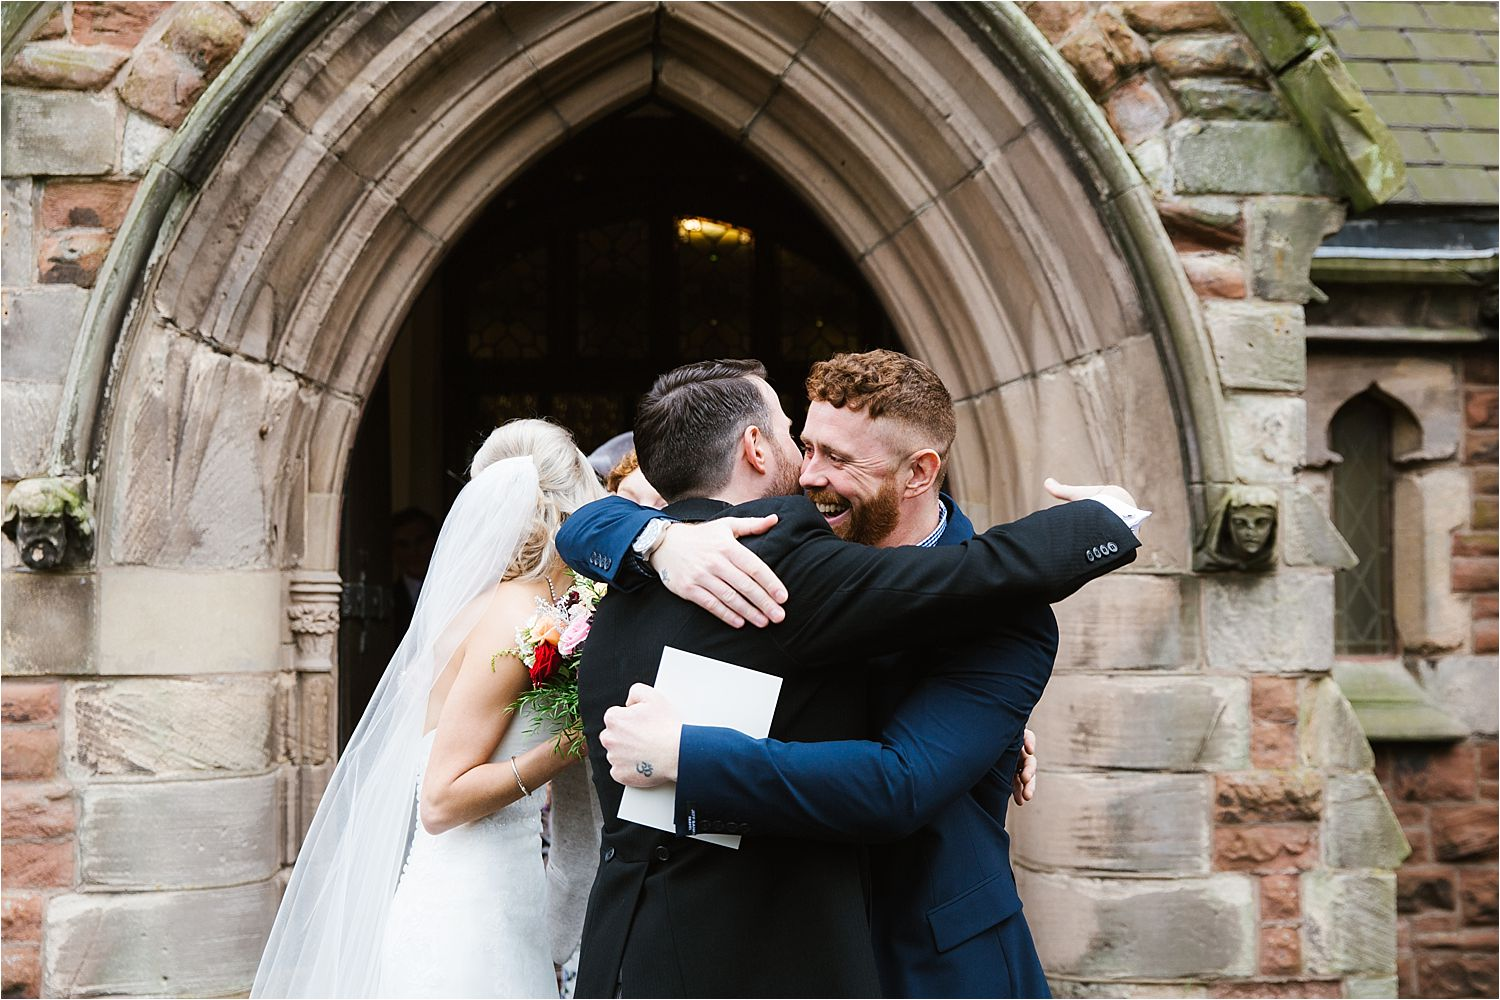 Bride and groom embrace guest outside church